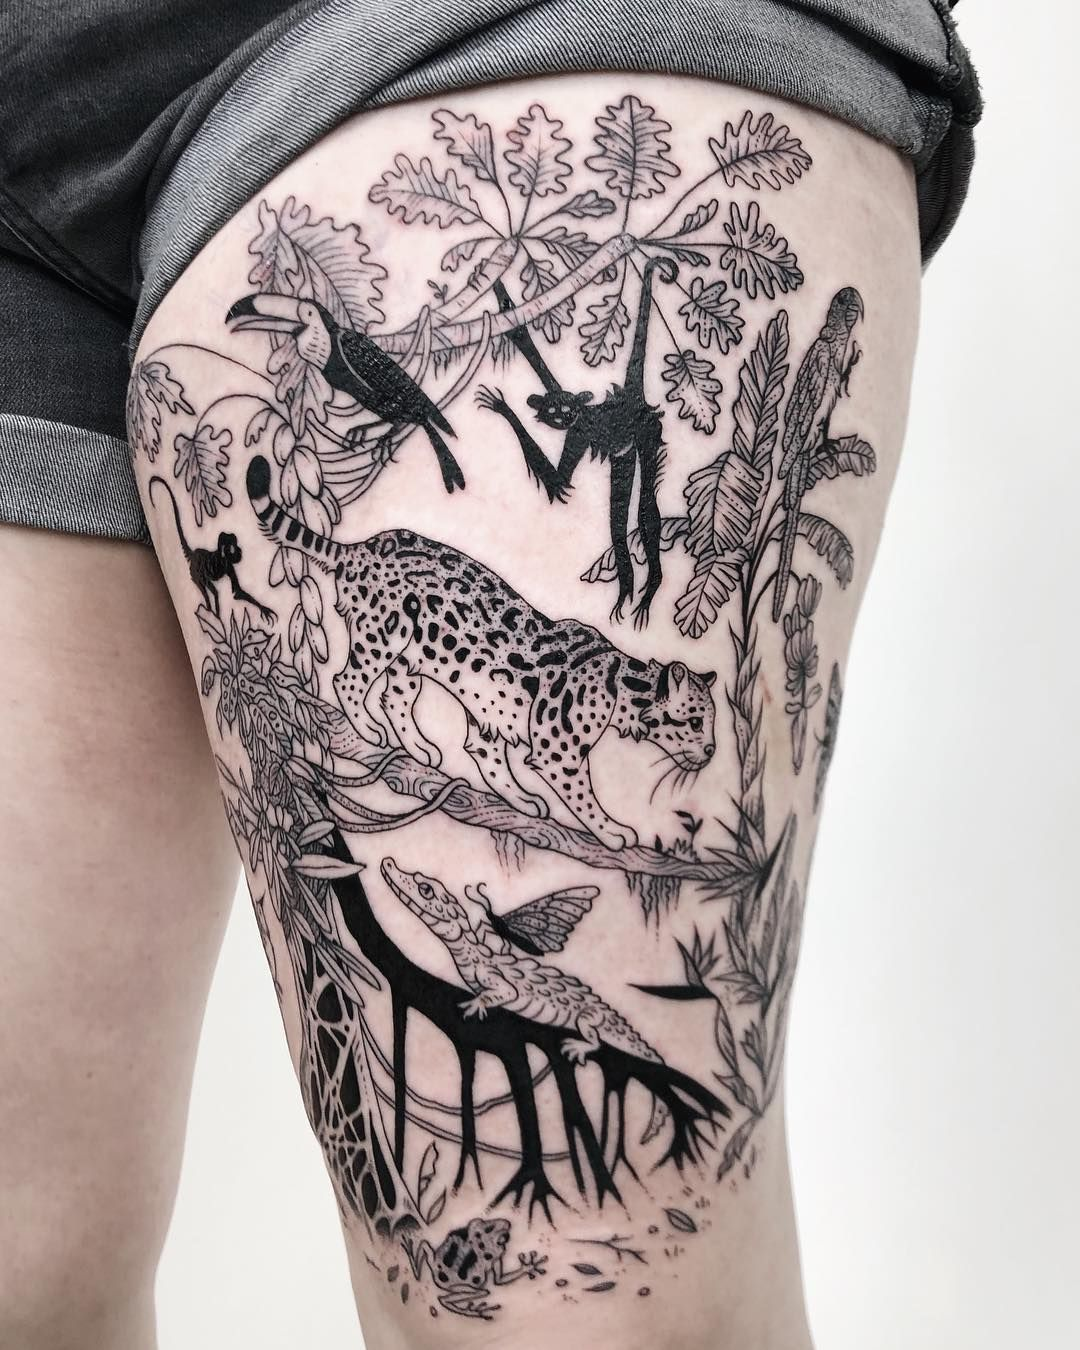 """Photo of Pony Reinhardt Tattoo on Instagram: """"Return from the jungle to a jungle: ocelot, with caiman's tear-feeding butterflies, black spider monkeys, battle of the walking tree and…"""""""